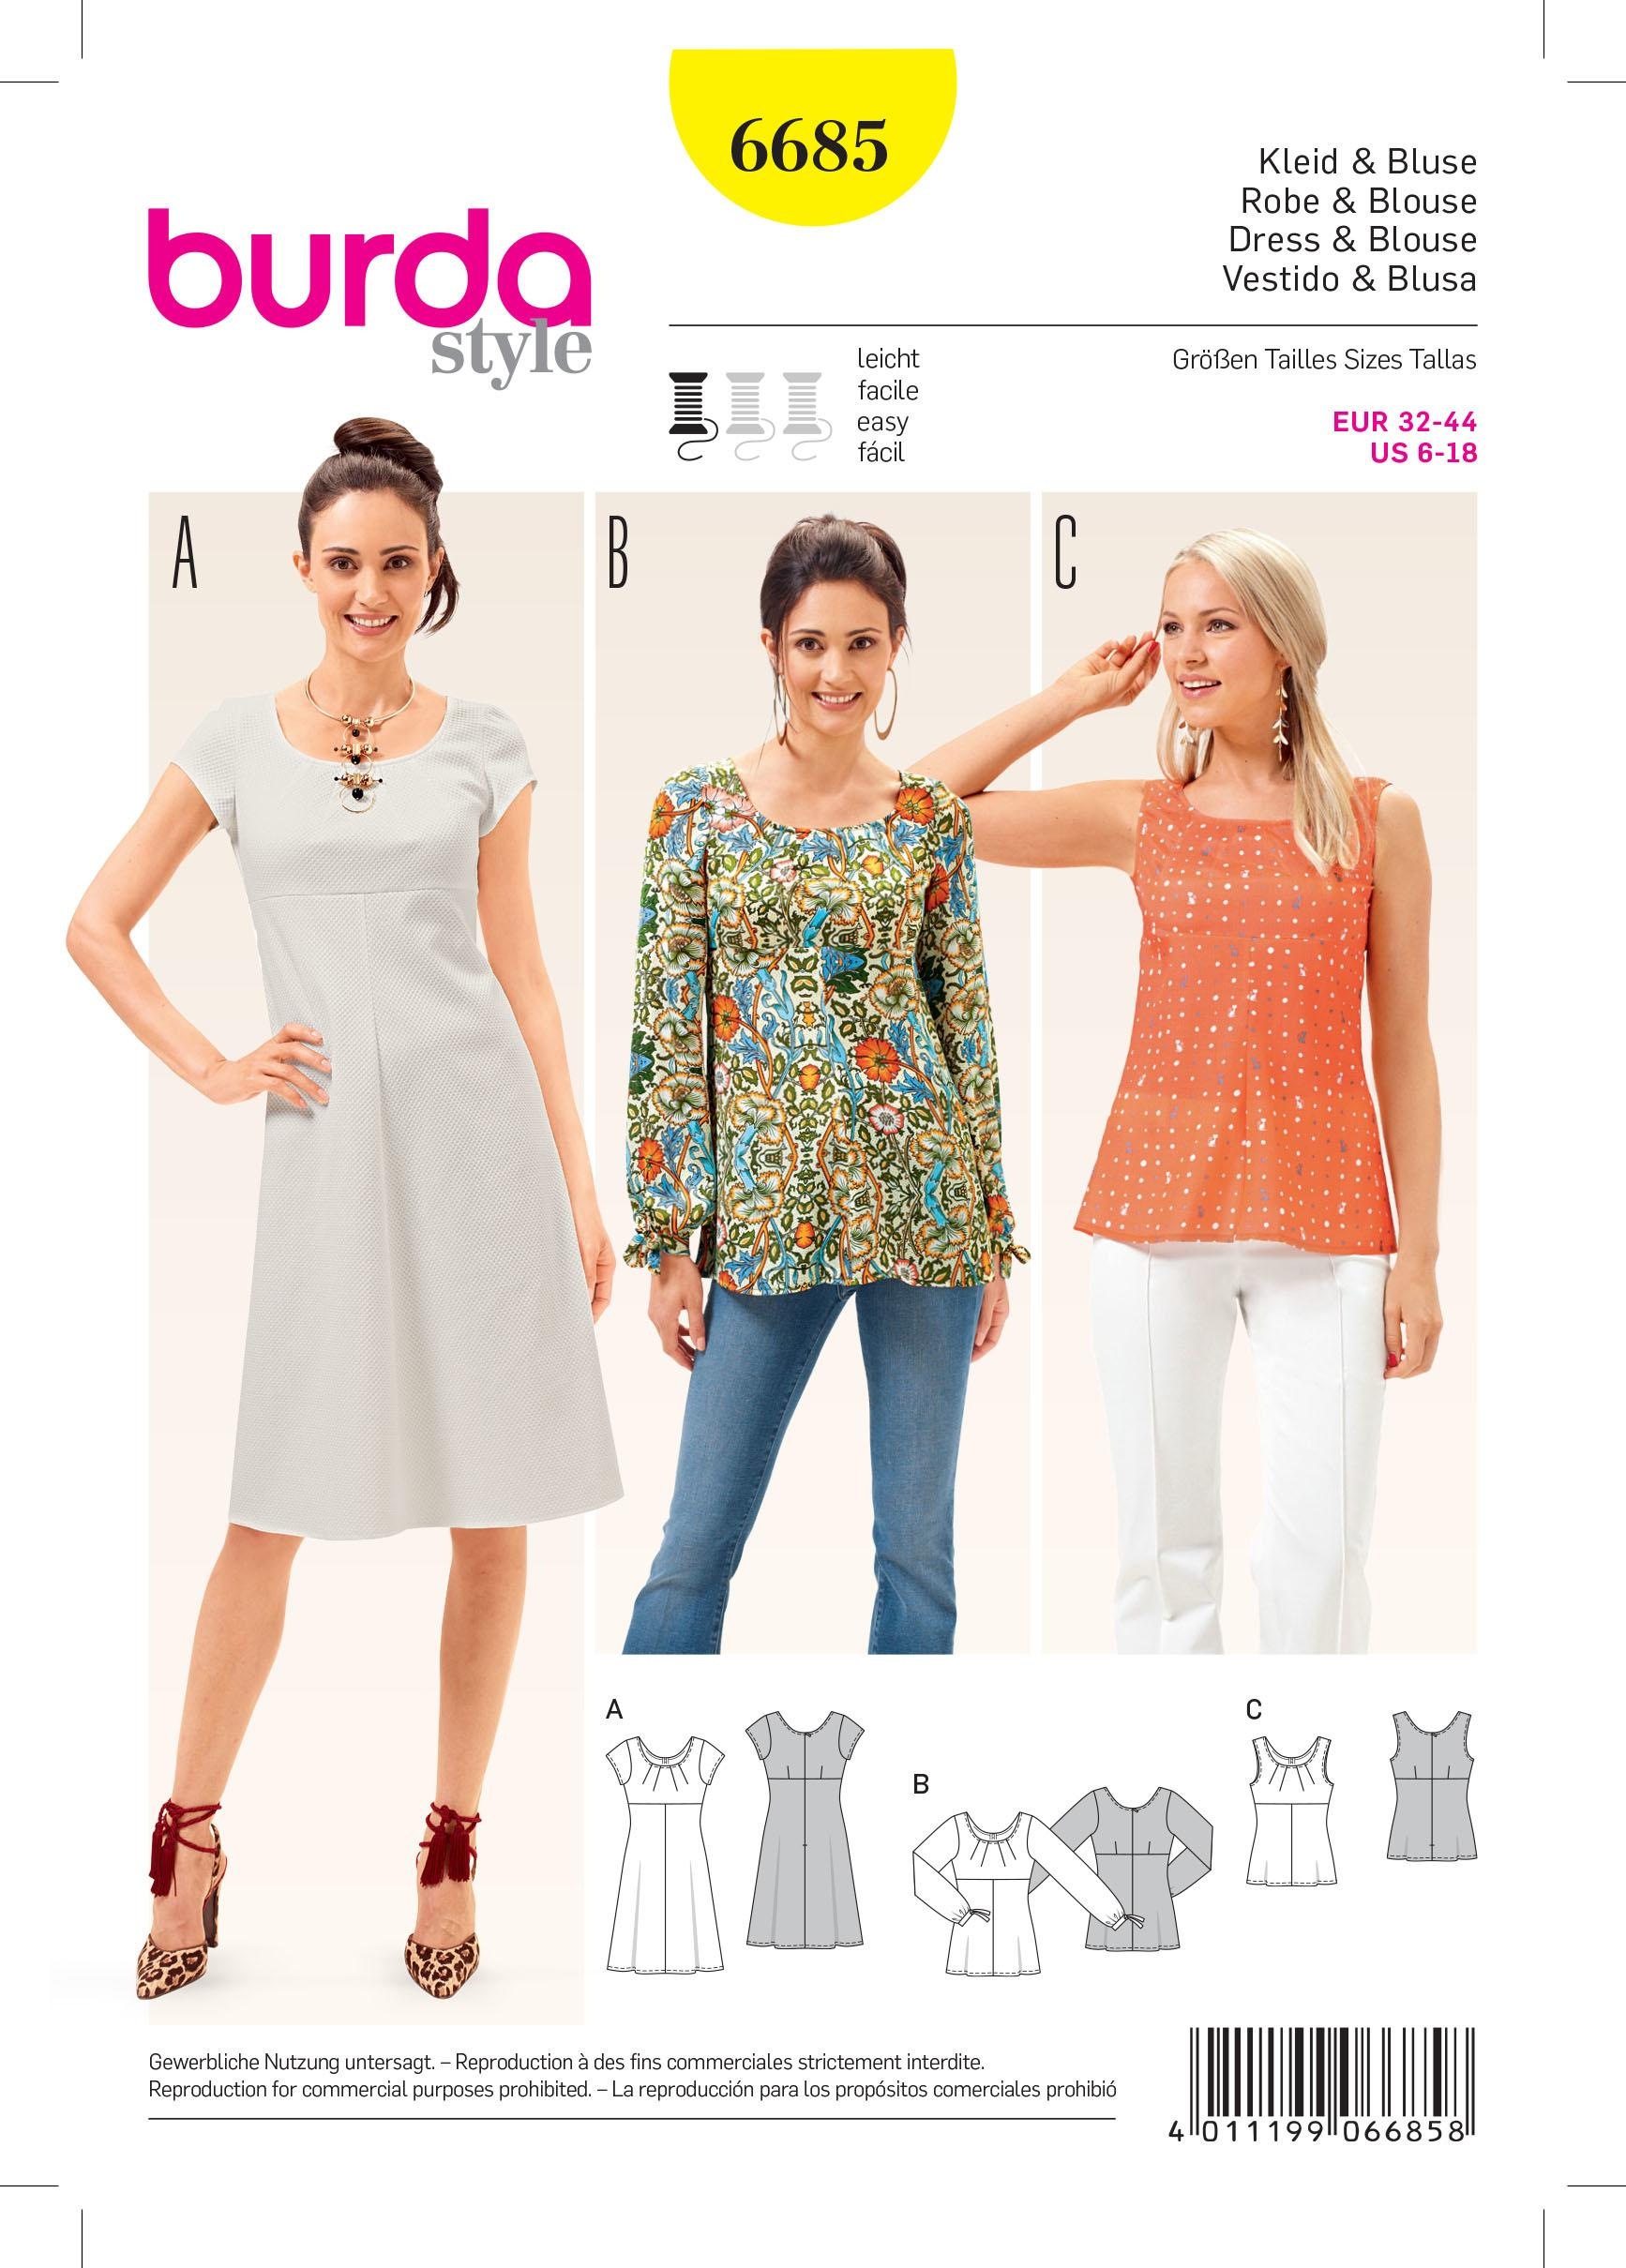 Burda B6685 Women's Dress & Blouse Sewing Pattern